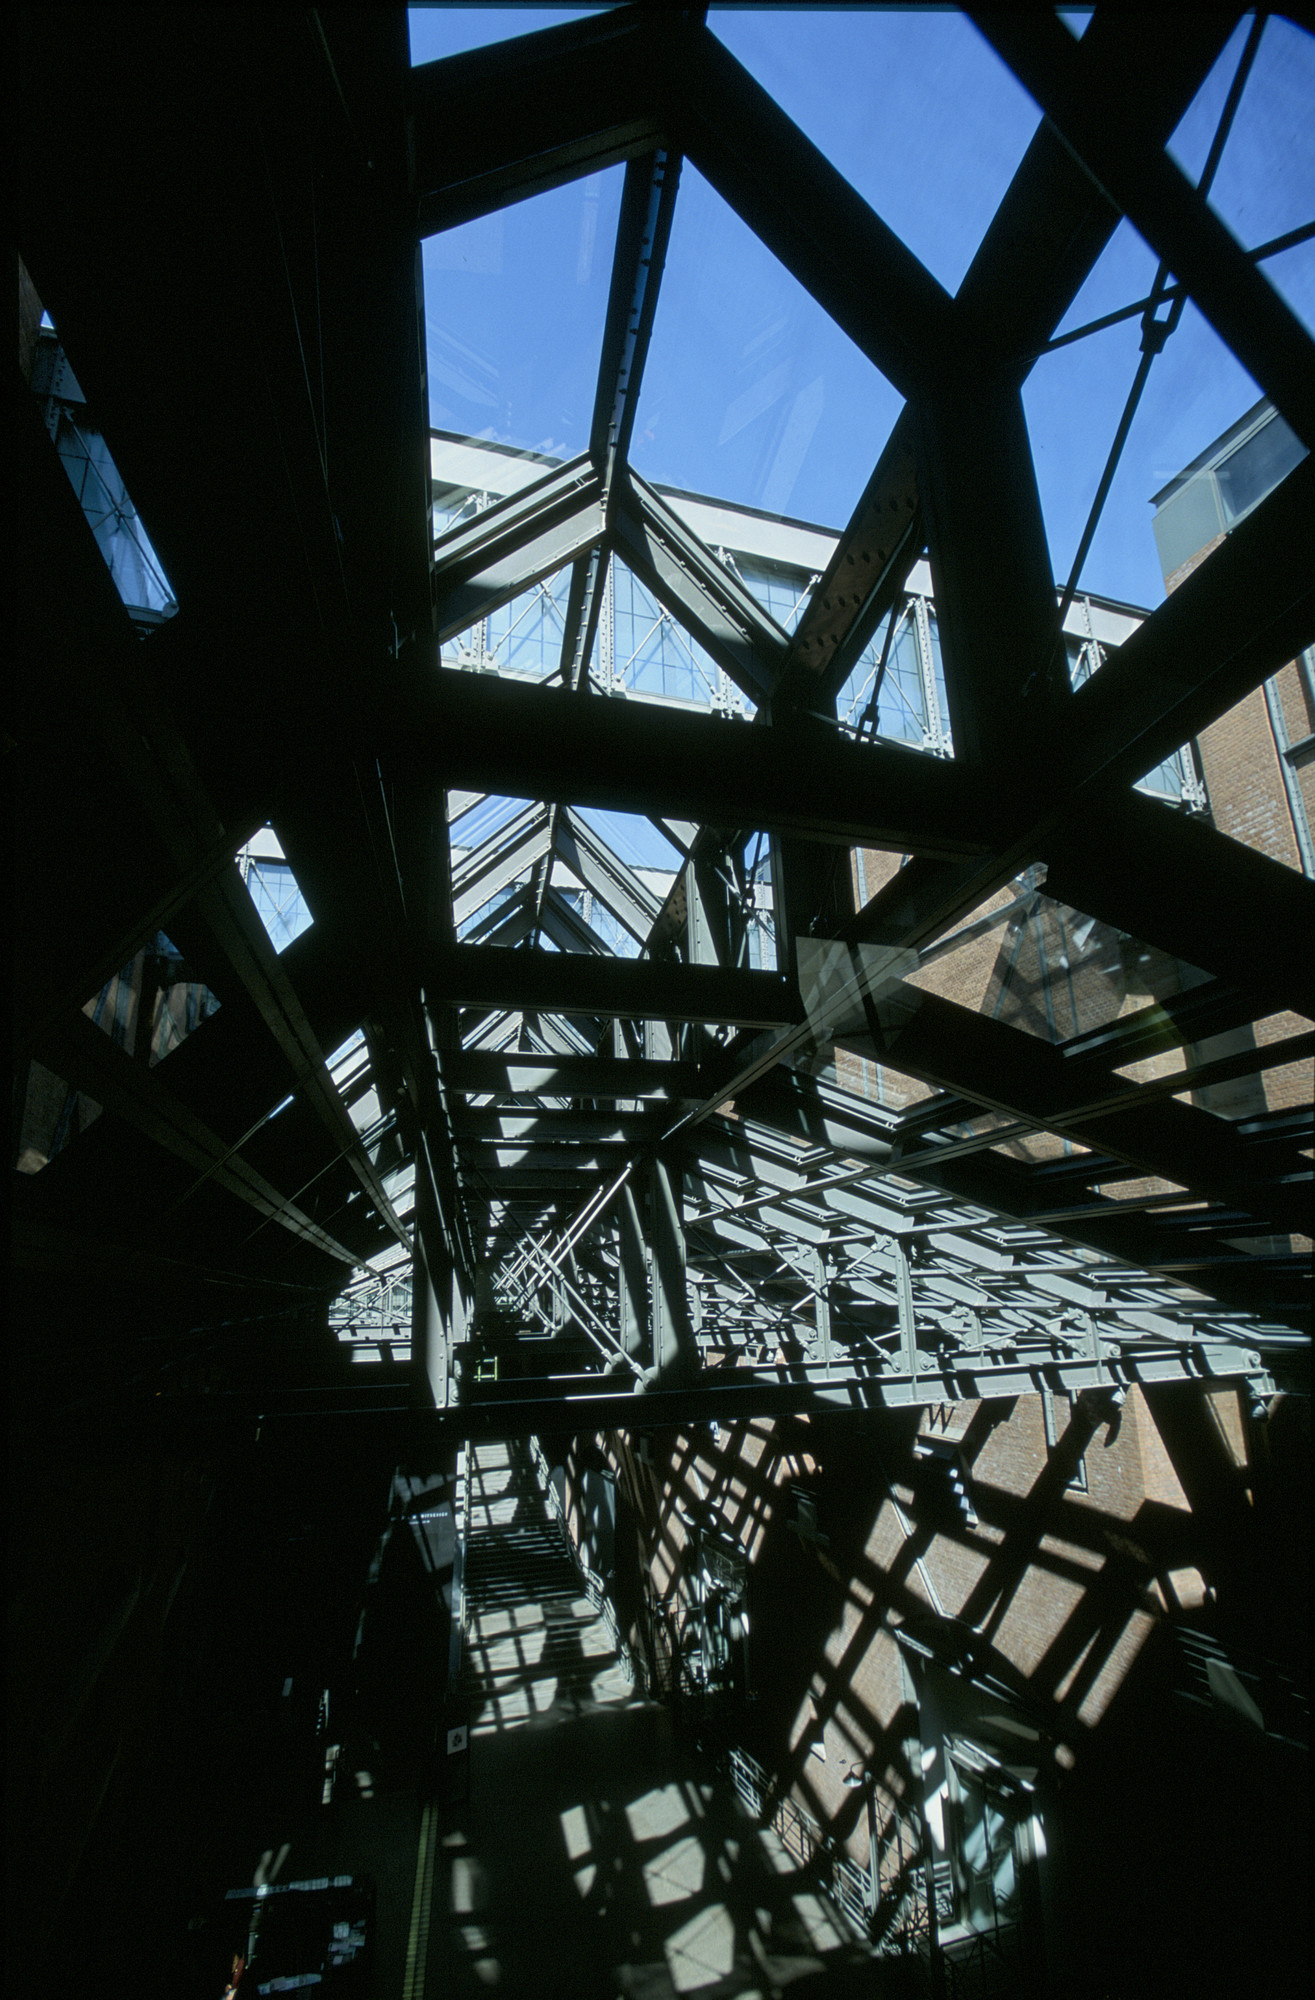 A detail of the roof structure of the Hall of Witness at the U.S. Holocaust Memorial Museum.